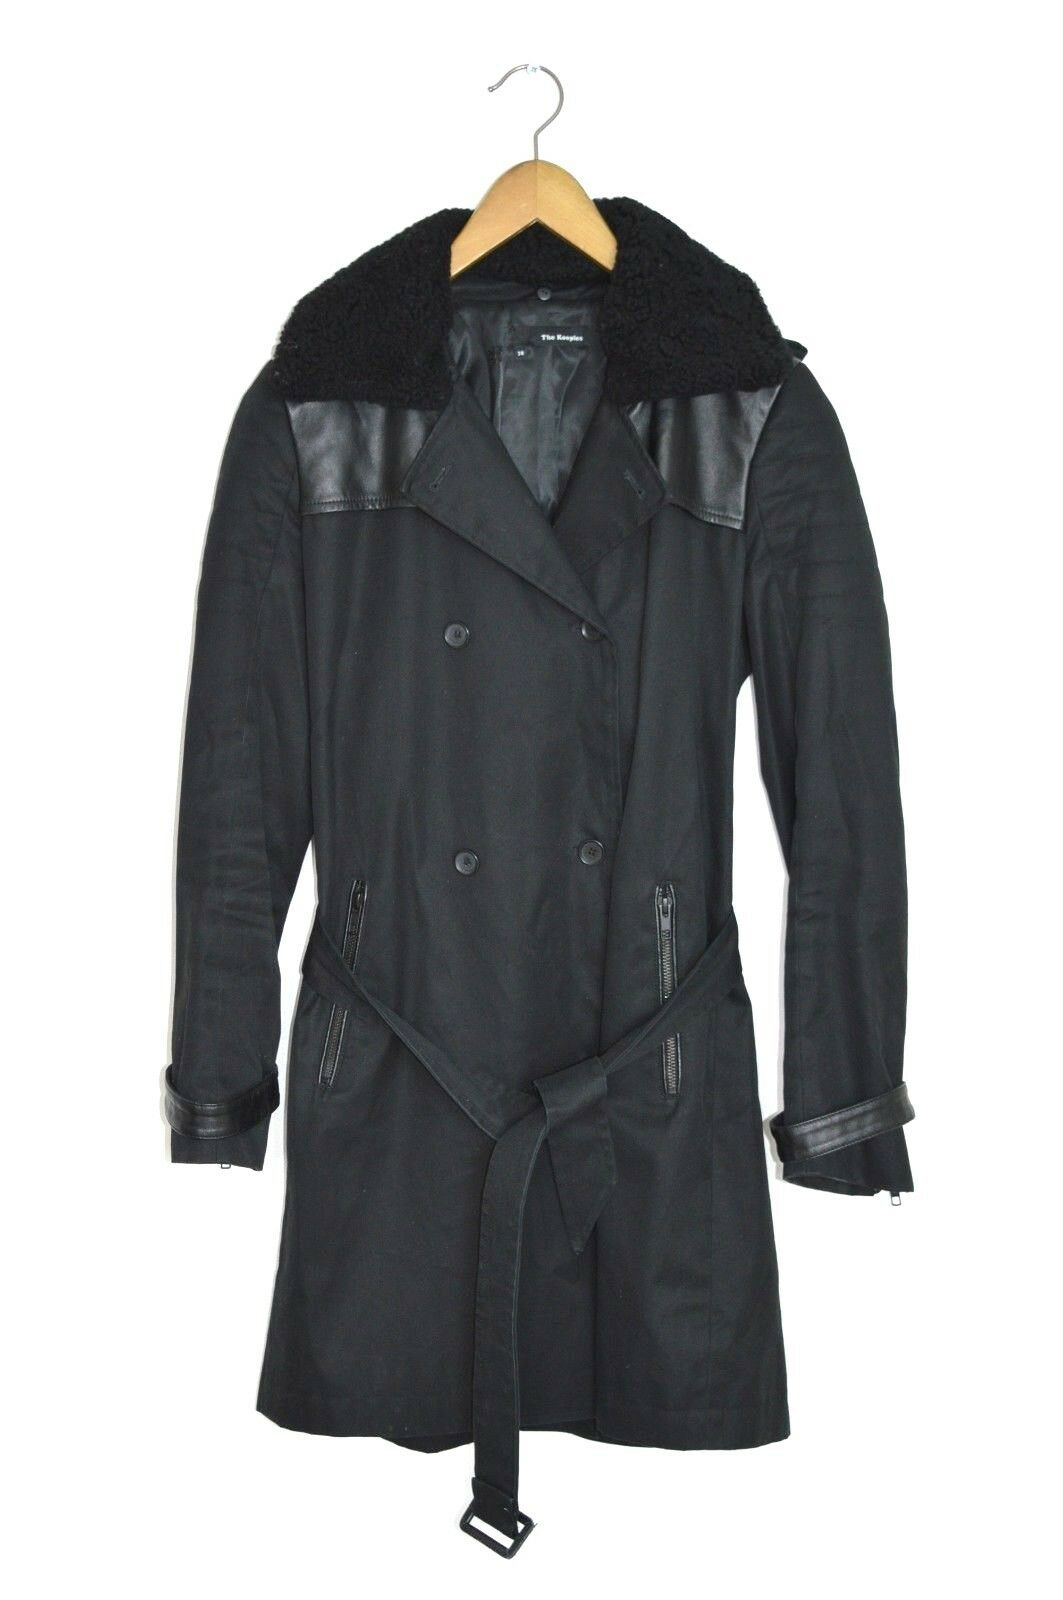 STUNNING The Kooples Ladies Cotton Trench with leather detail UK10 US6 EU38